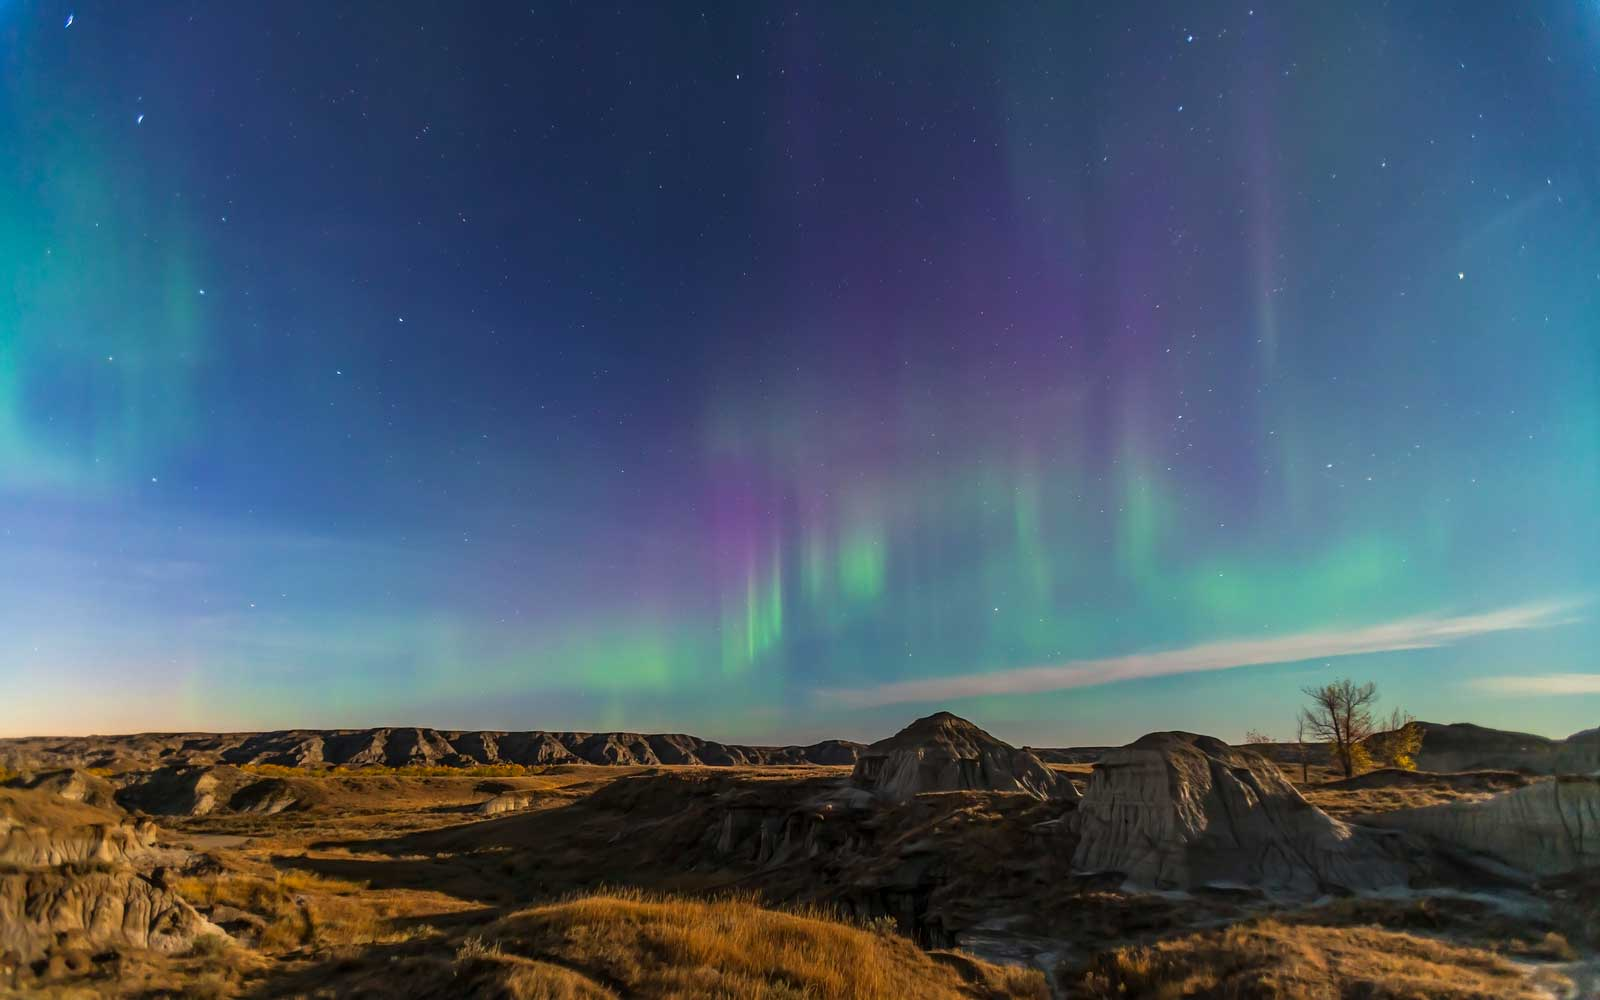 You Can Hunt for Dinosaur Fossils and Camp Out Under the Northern Lights at This Magical Park in Canada (Video)